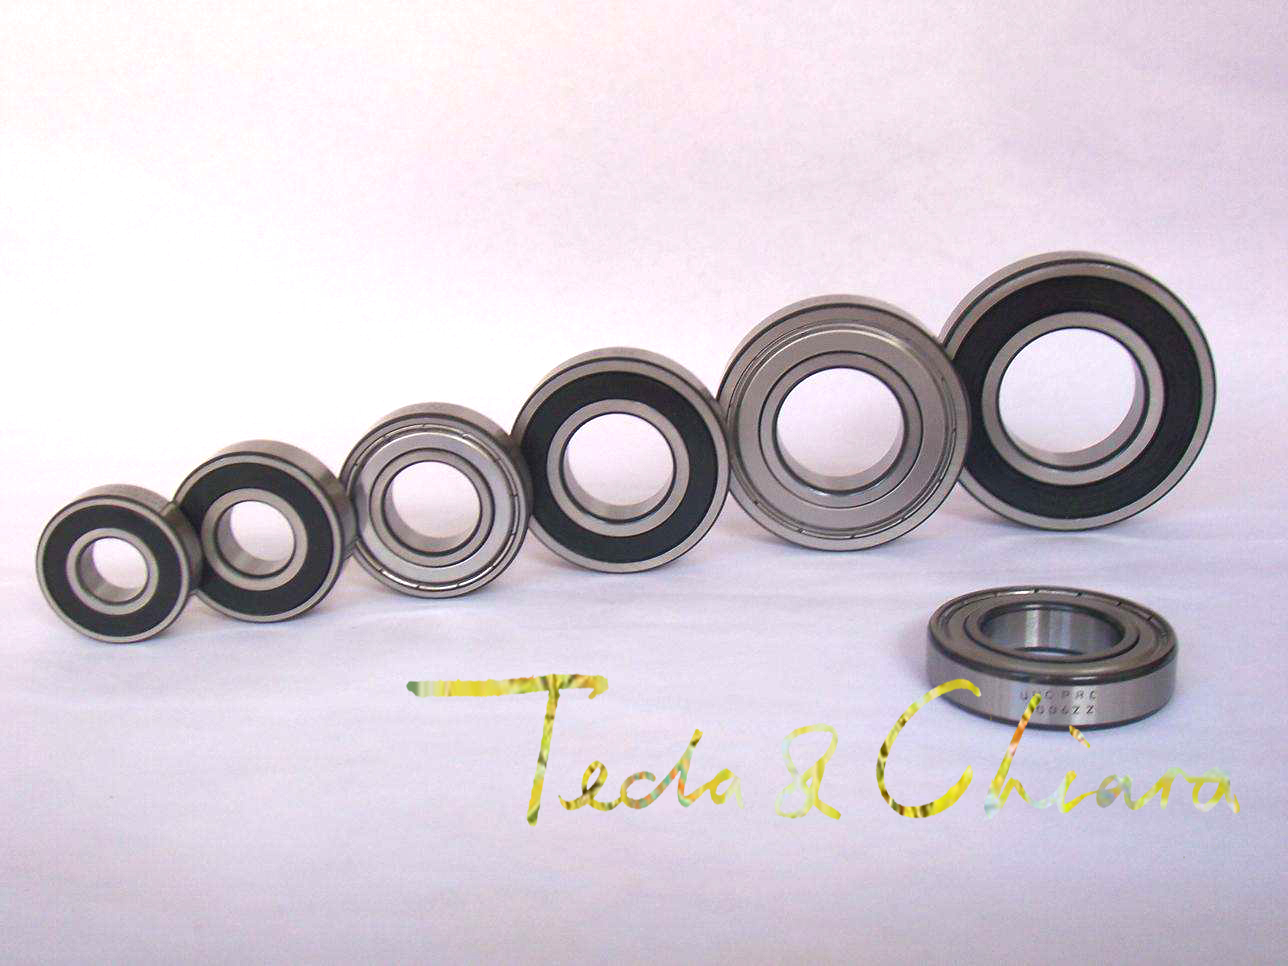 687 687ZZ 687RS 687-2Z 687Z 687-2RS ZZ RS RZ 2RZ 2000087 L1470ZZ Deep Groove Ball Bearings 7 x 14 x 5mm High Quality 8mm x 1 8 pt push in one touch l shaped quick fitting connector